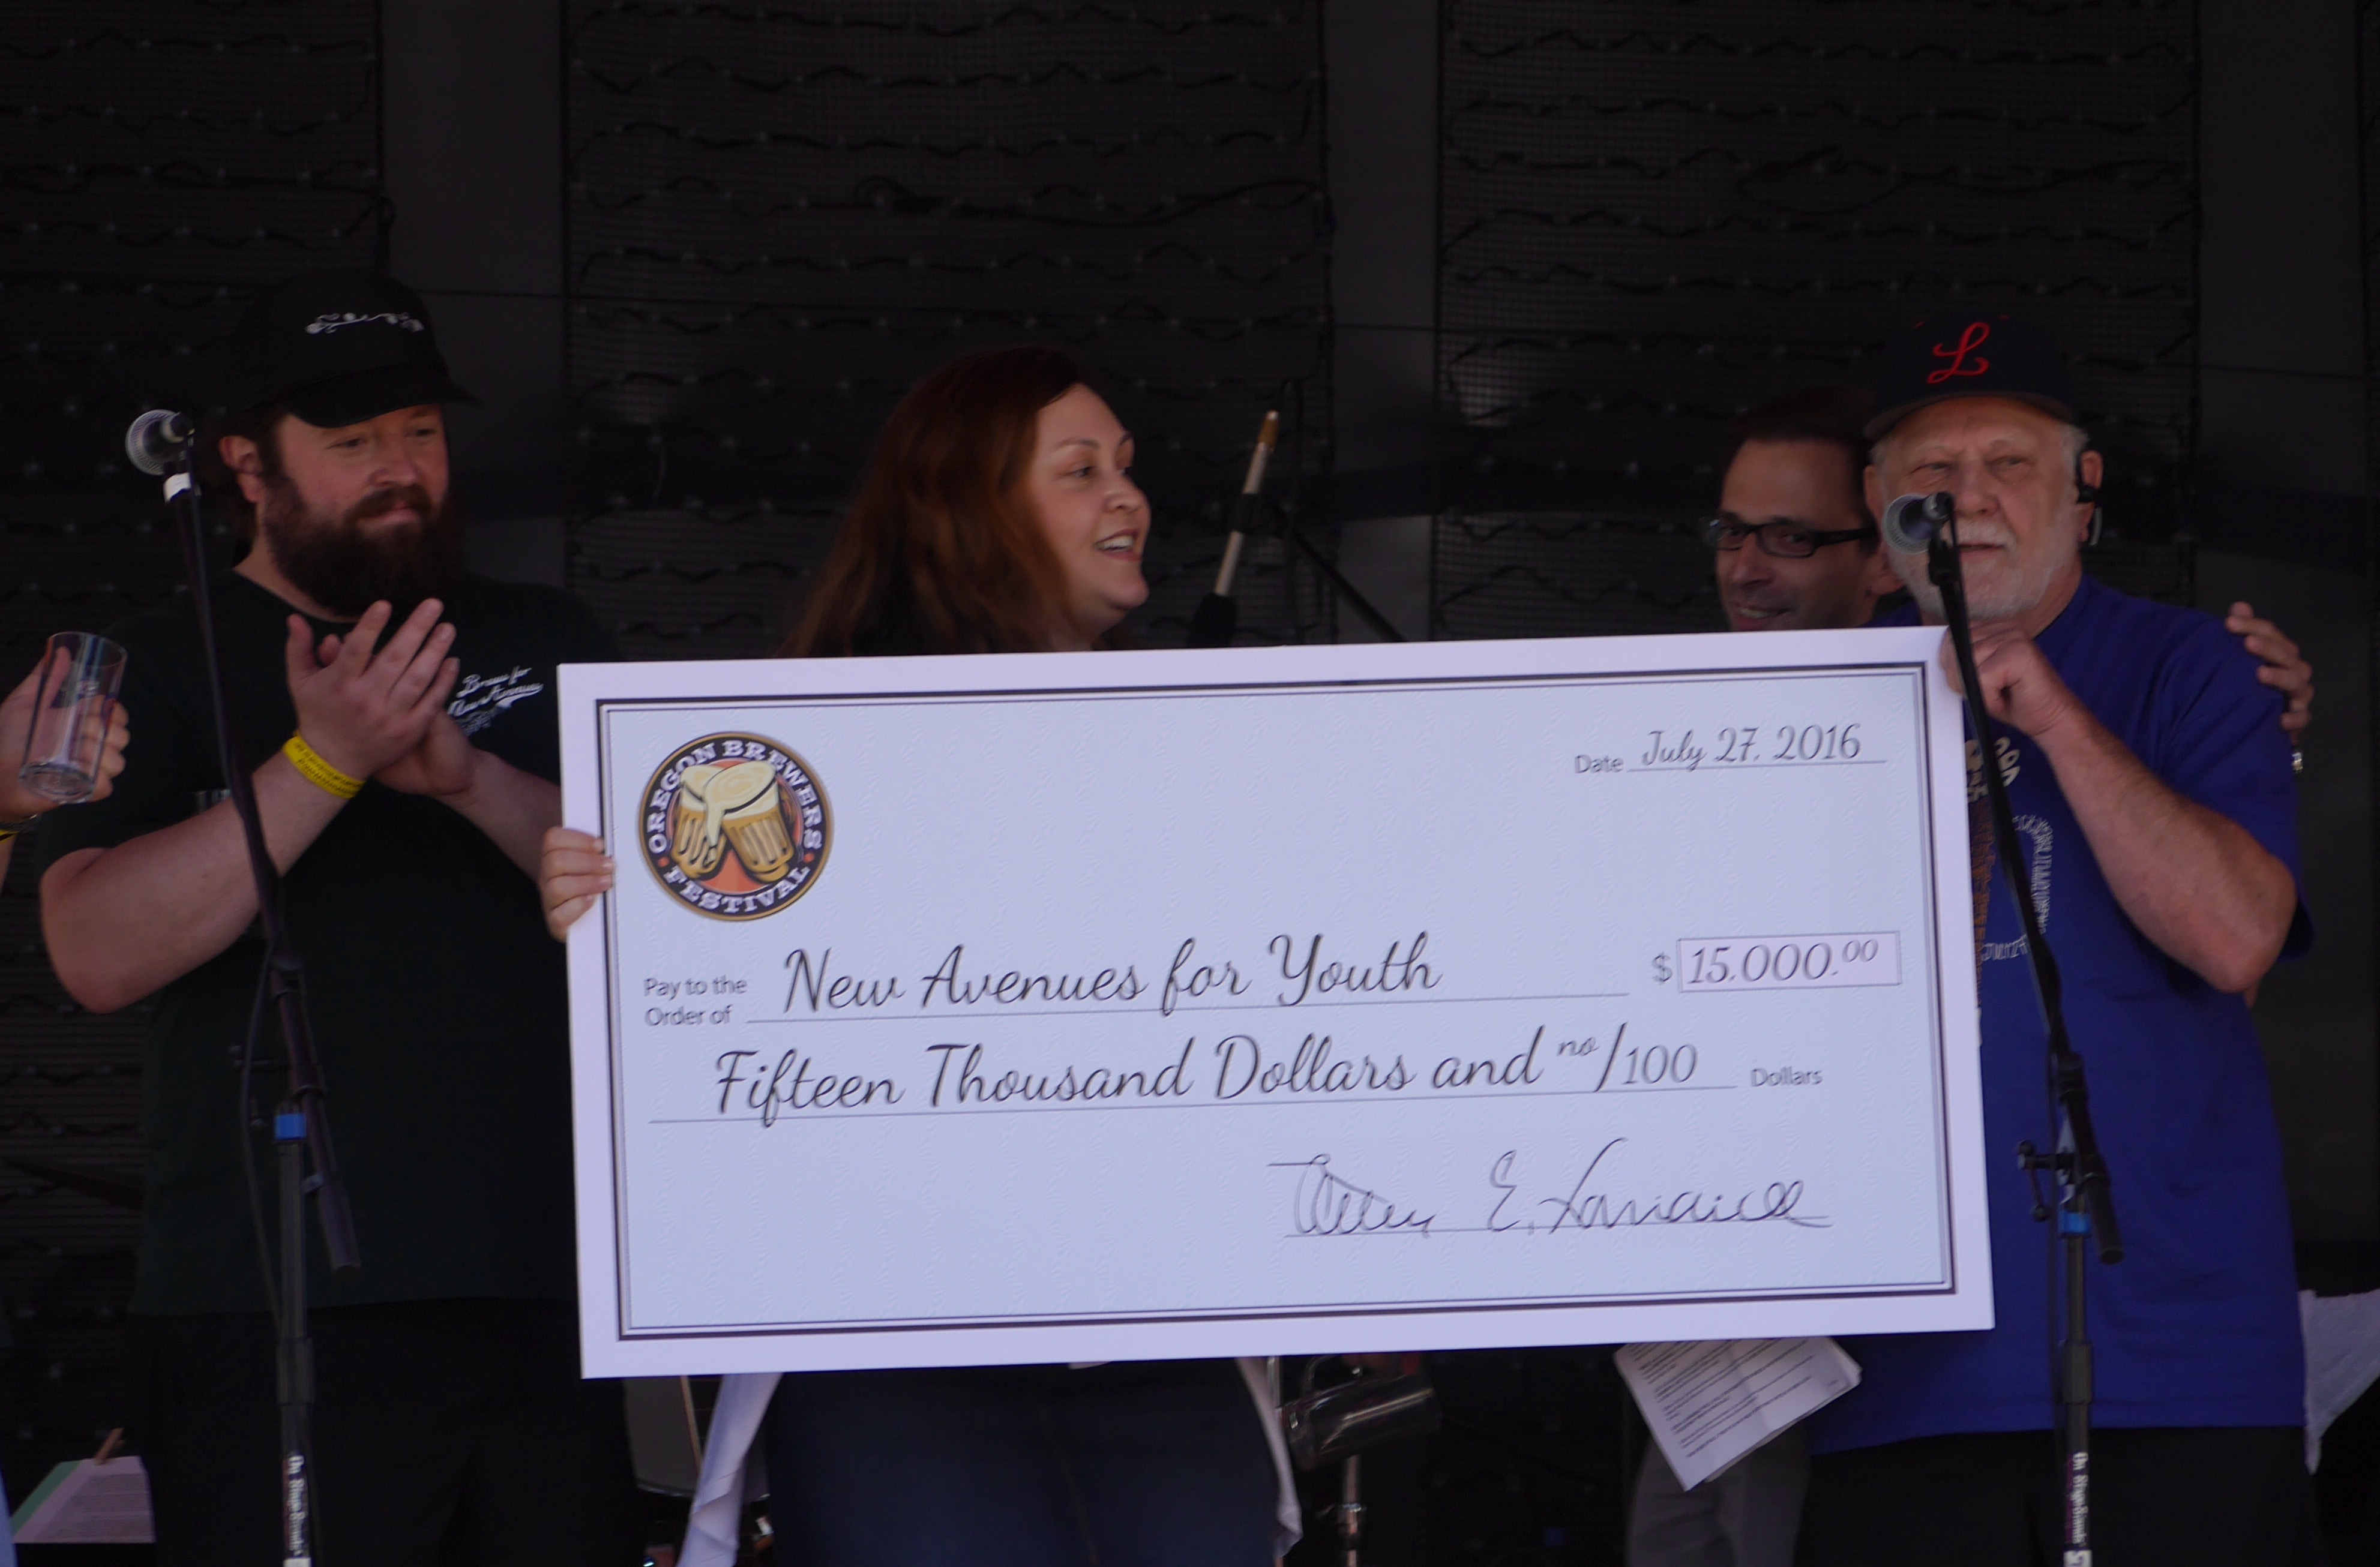 Oregon Brewers Festival founder Art Larrance presents a $15,000 check to New Avenues for Youth, the 2016 OBF beneficiary. (photo by Cat Stelzer)